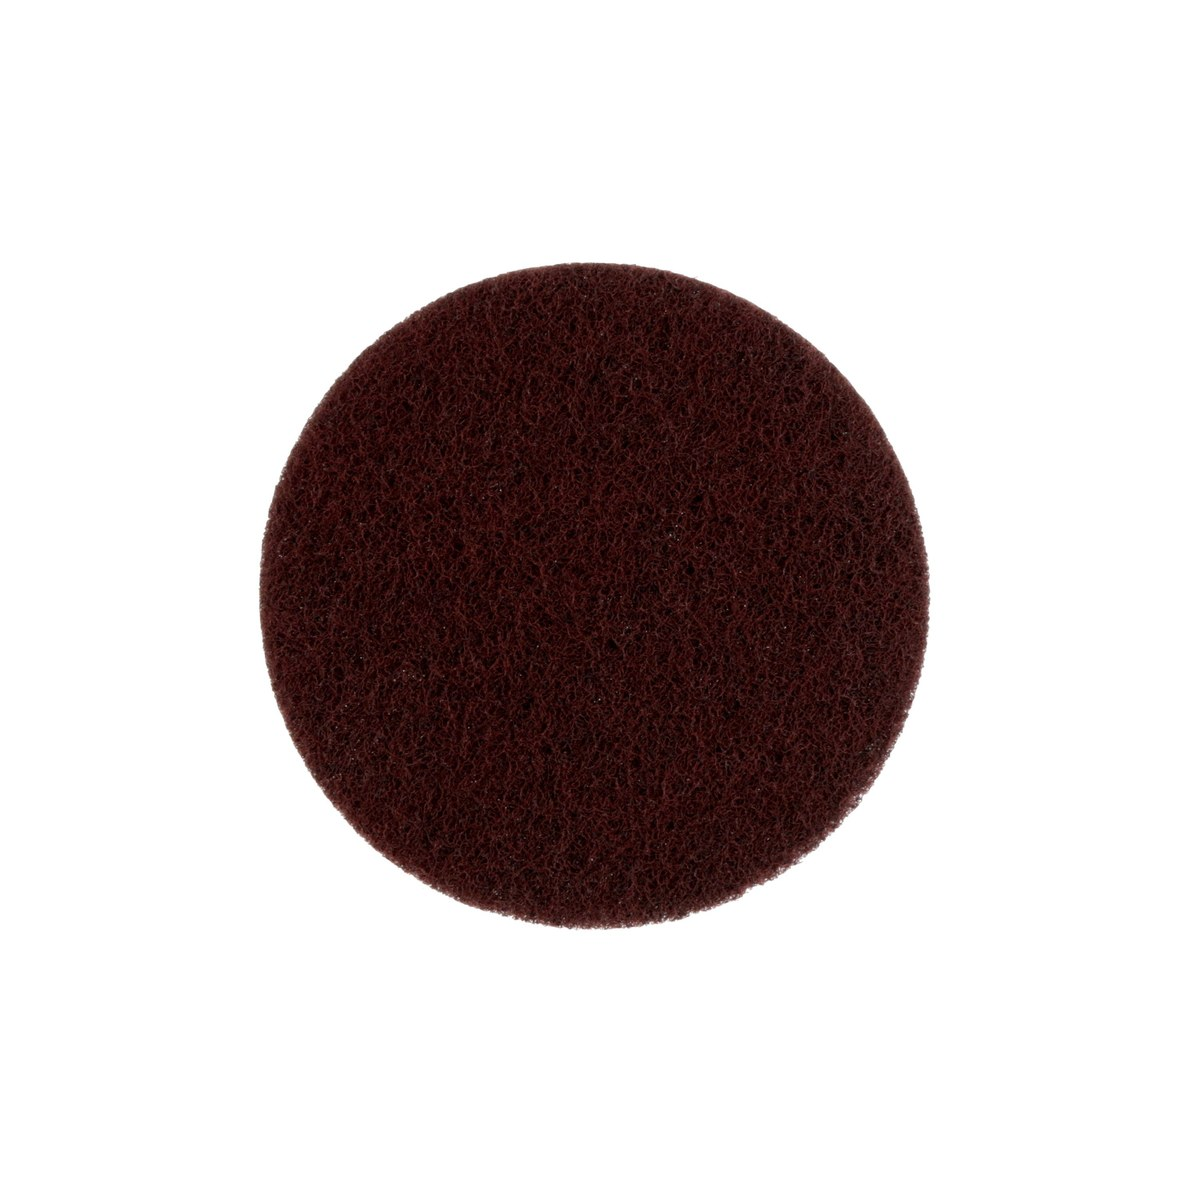 Scotch-Brite 4-1//2 Non-Woven Hook-and-Loop Sanding Disc Very Fine Grade Aluminum Oxide